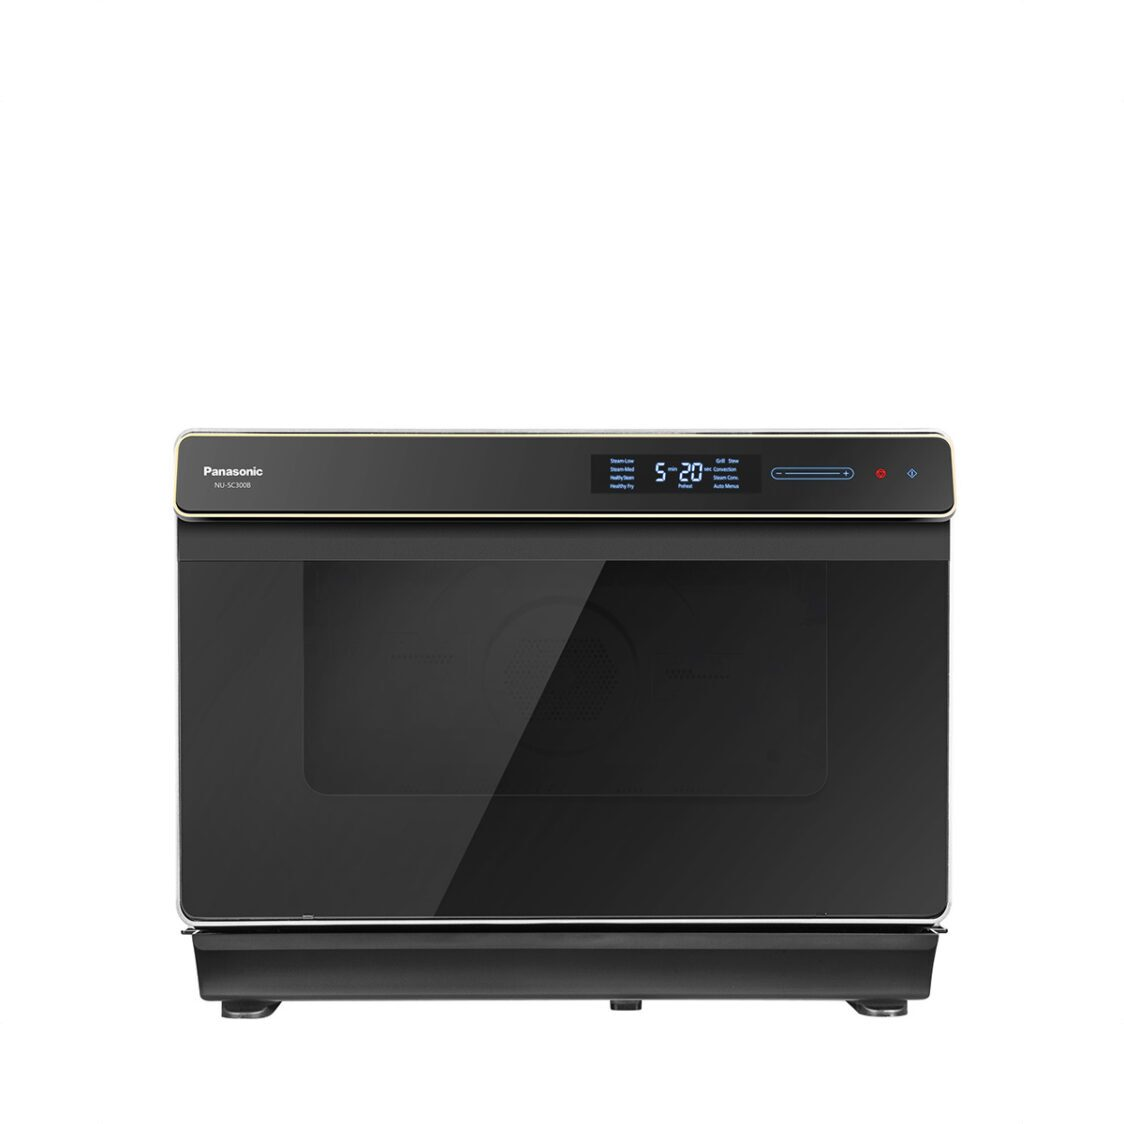 Panasonic 30L Superheated Steam Convection Oven